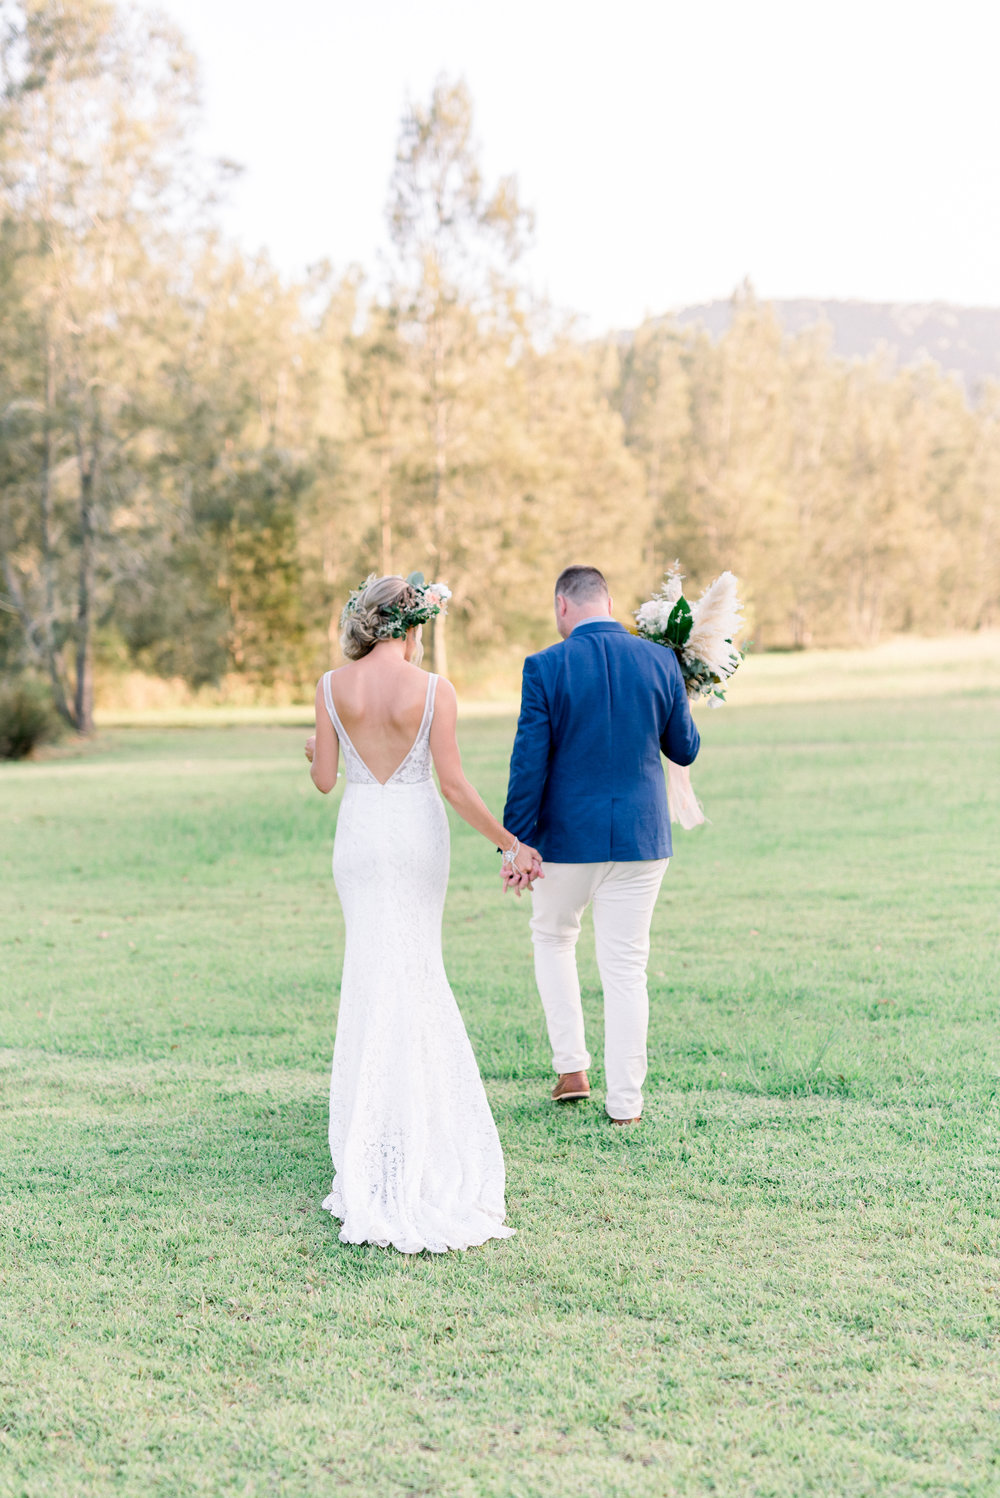 Collection One - $3850 - 10 hours photographic coverageApproximately 900 edited, high-resolution imagesWedding images supplied on our custom USBOnline gallery to share with friends and familyComplimentary Engagement session with 30 imagesHeritage glass box with 100 4x6 prints